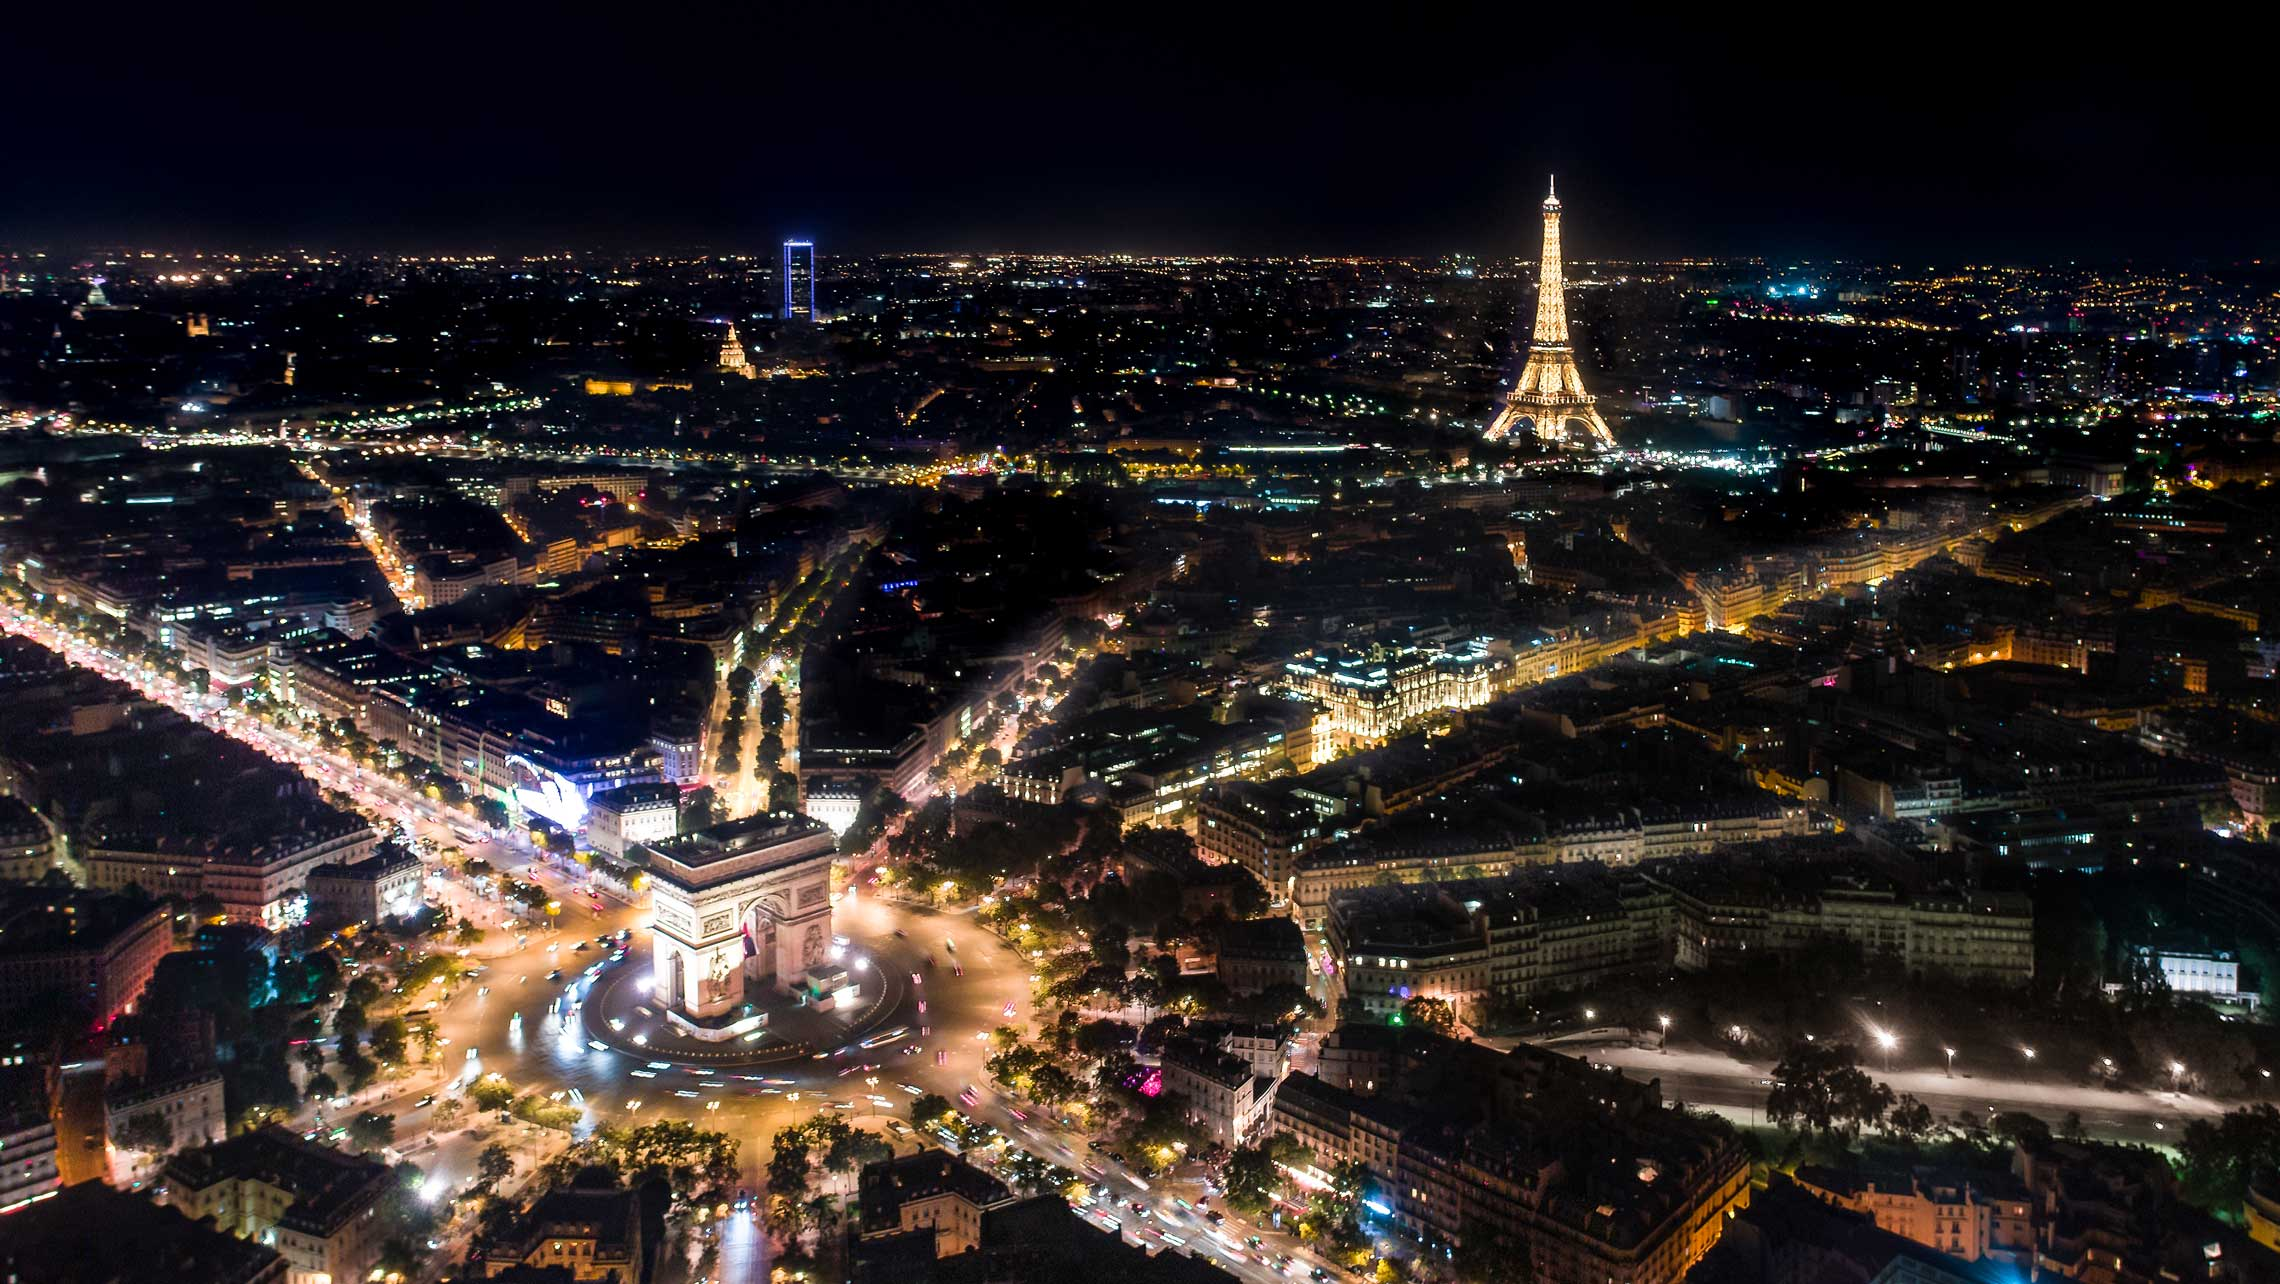 paris skyline photo by drone